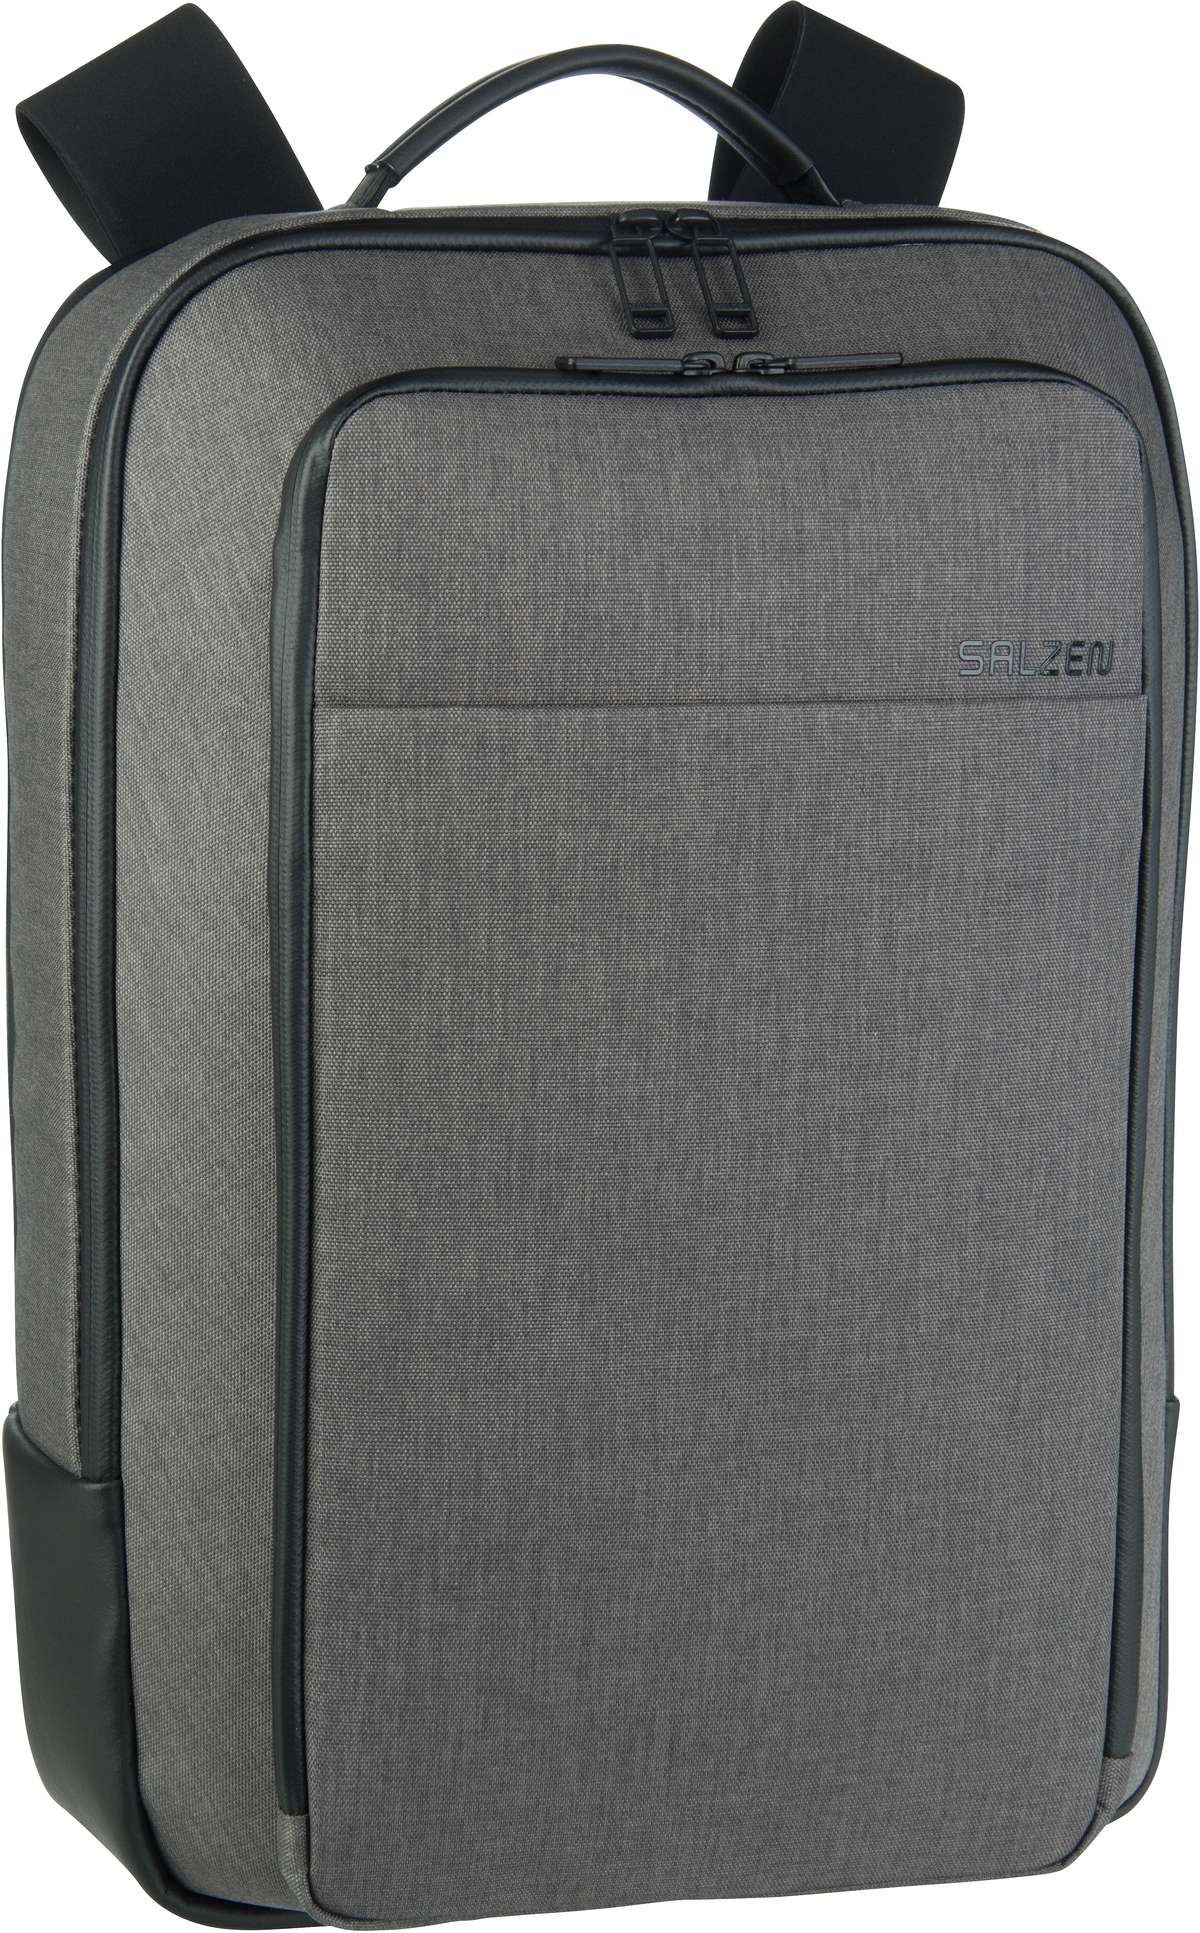 Laptoprucksack Originator Fabric Storm Grey (21 Liter)